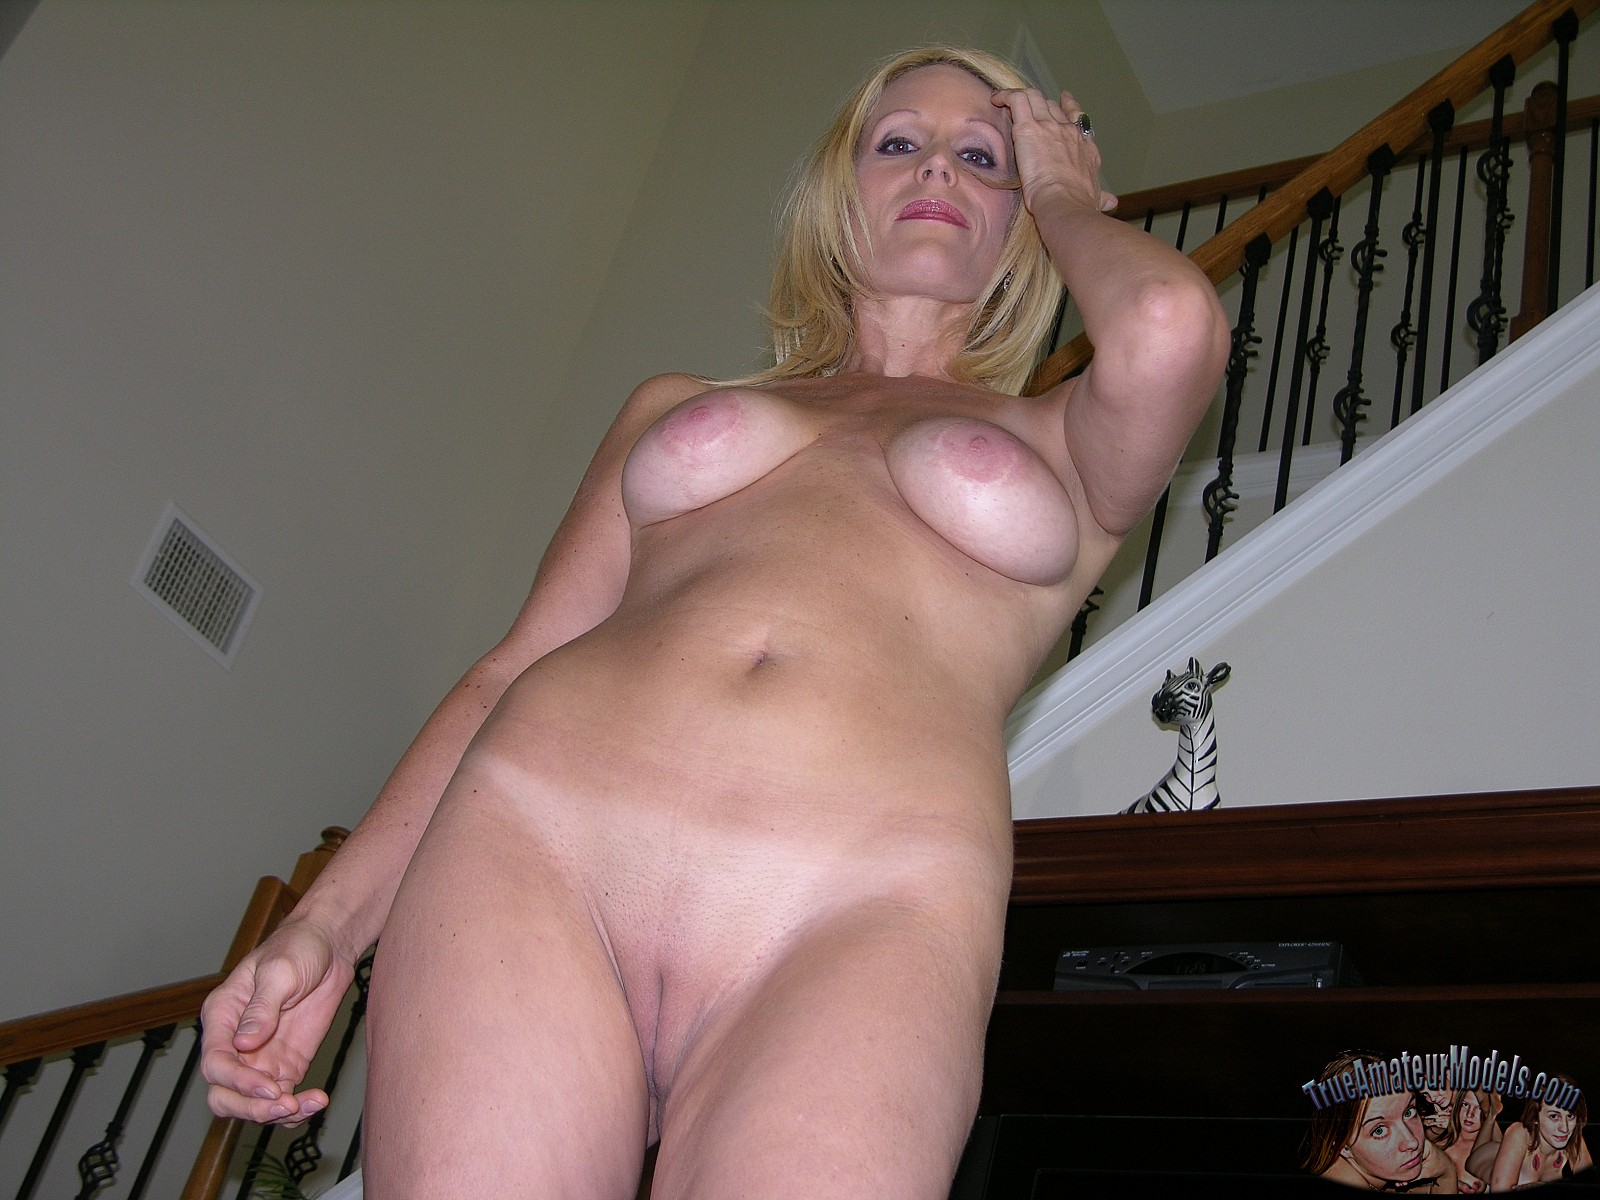 50 year old milf tumblr